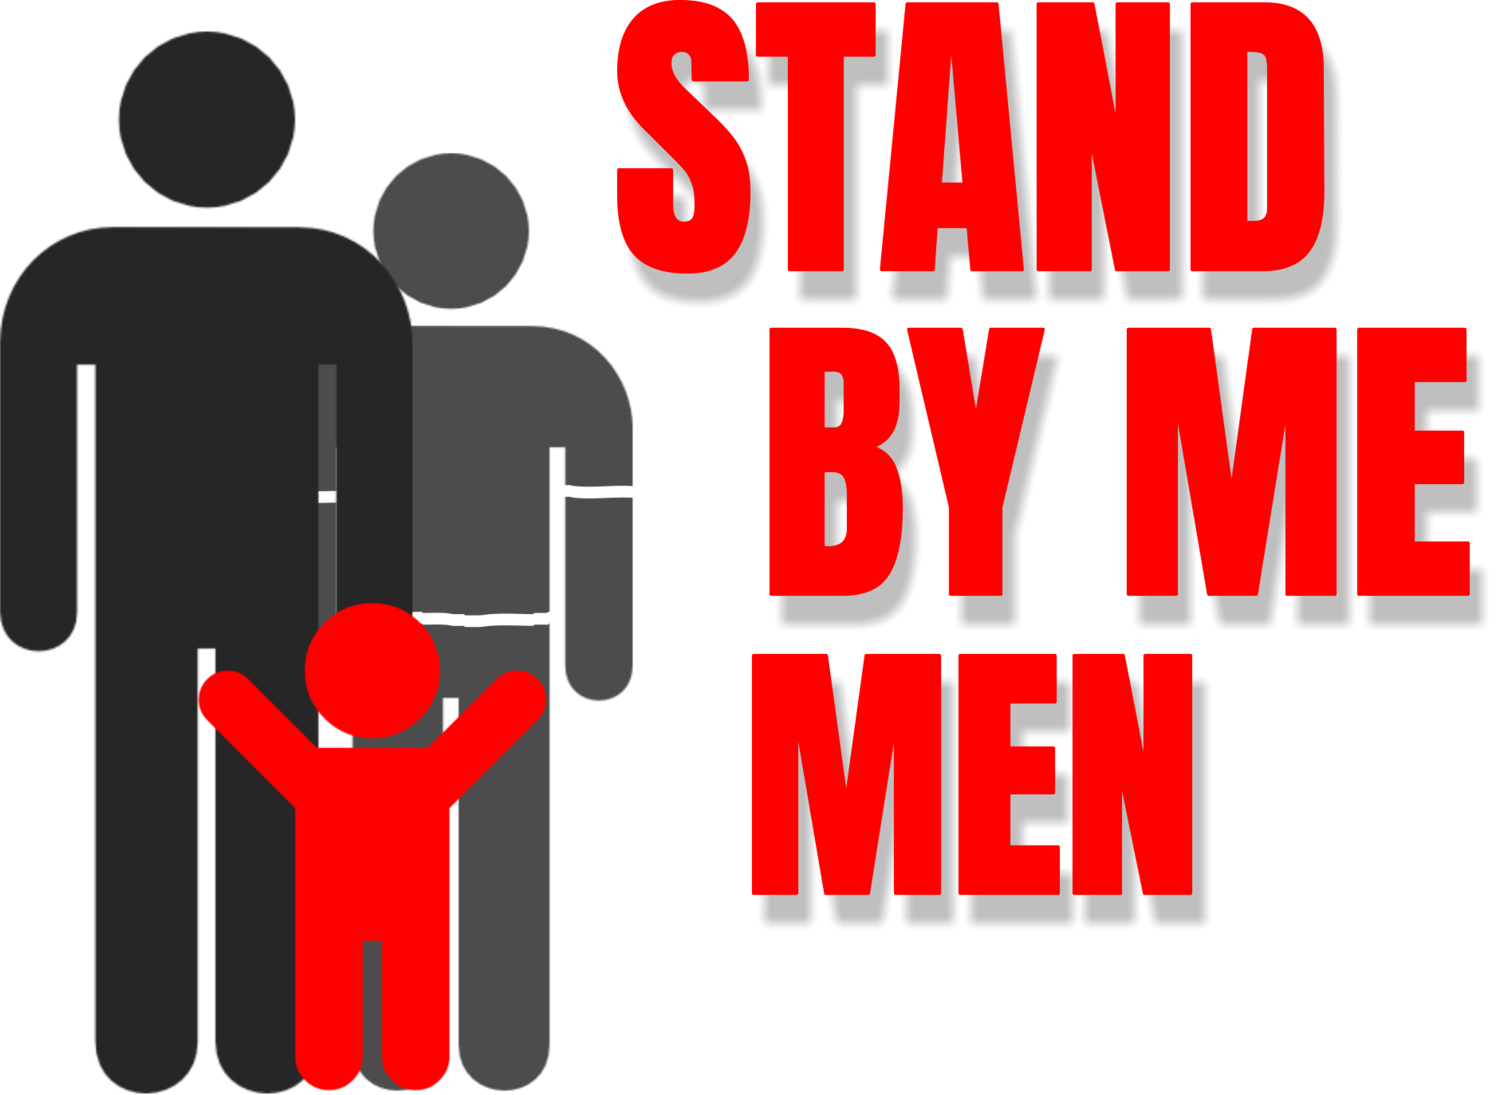 STAND BY ME - MEN